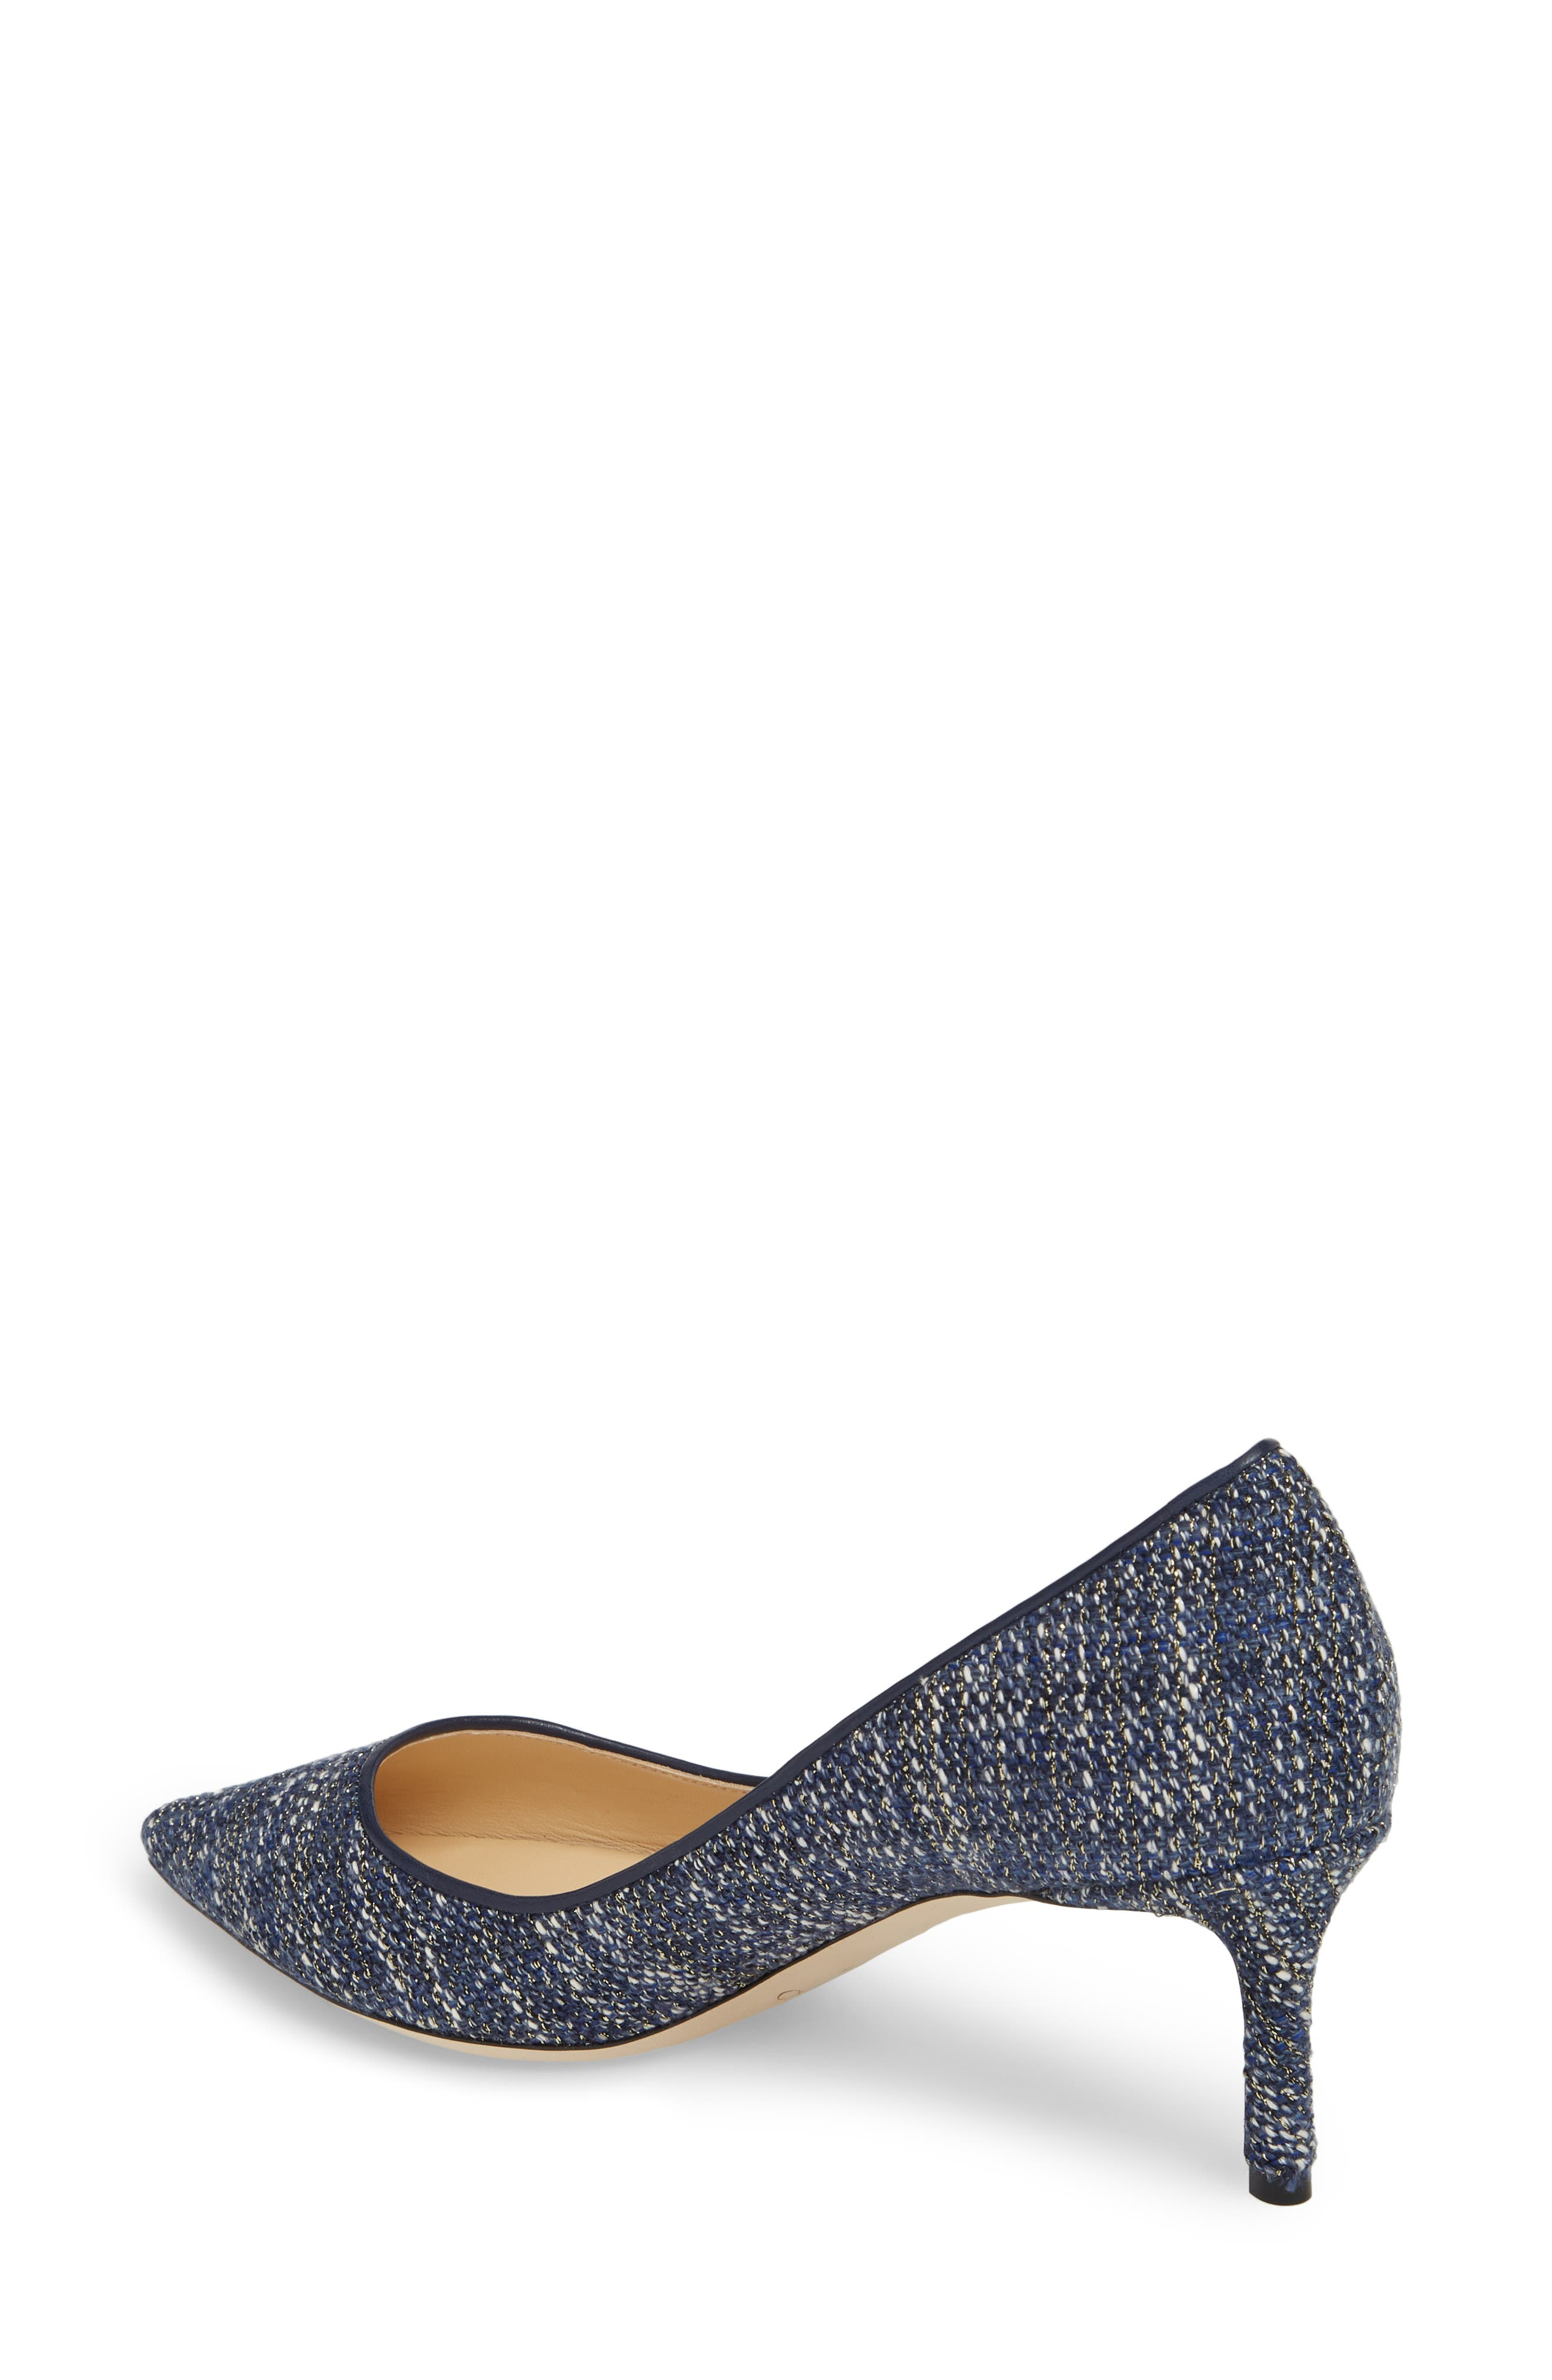 Romy Woven Pointy Toe Pump,                             Alternate thumbnail 2, color,                             410